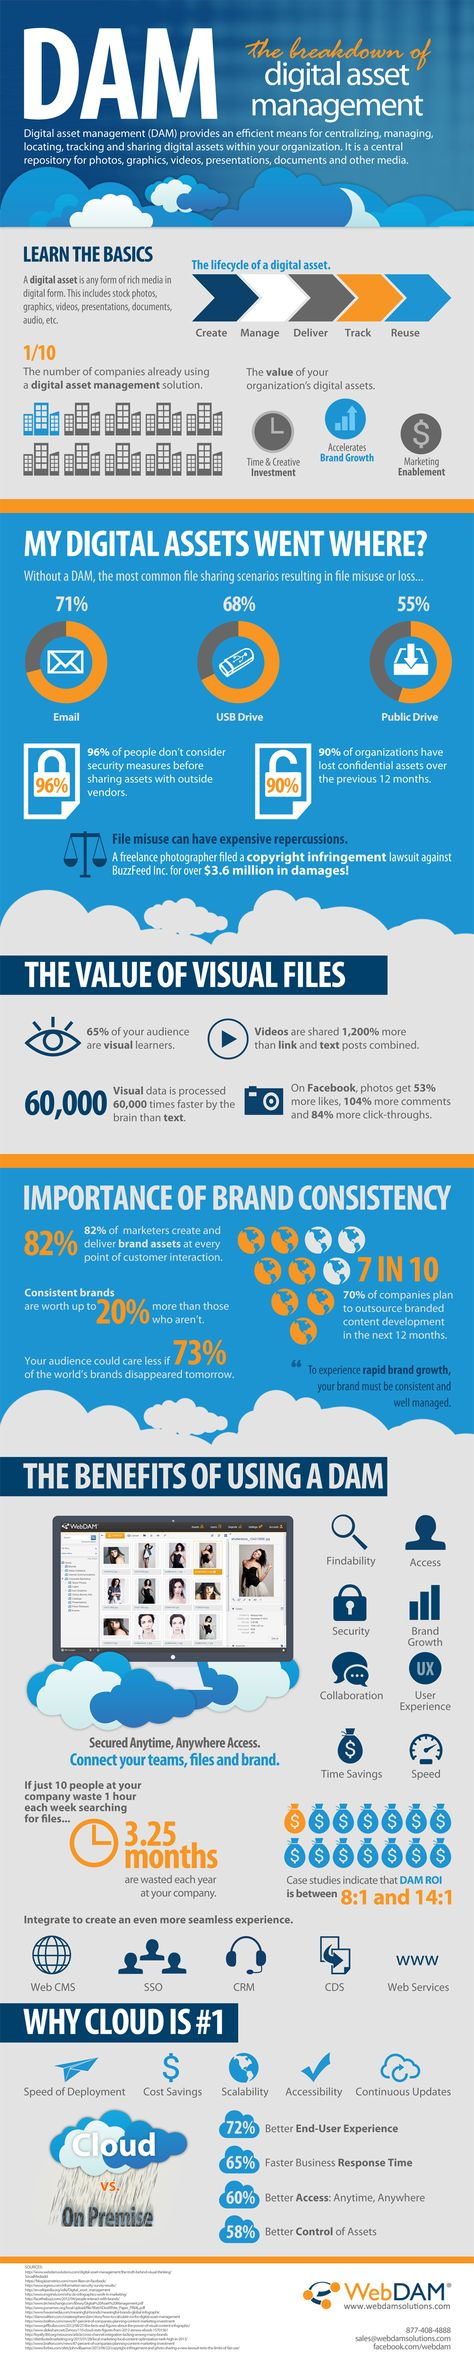 2013/Oct/10 -  DAM, Digital Assets Management trends, benefits and statistics. If you or your teams work with digital files, see how top companies accelerate brand growth and leverage visual media with DAM -- #socialmedia #infographic #2013